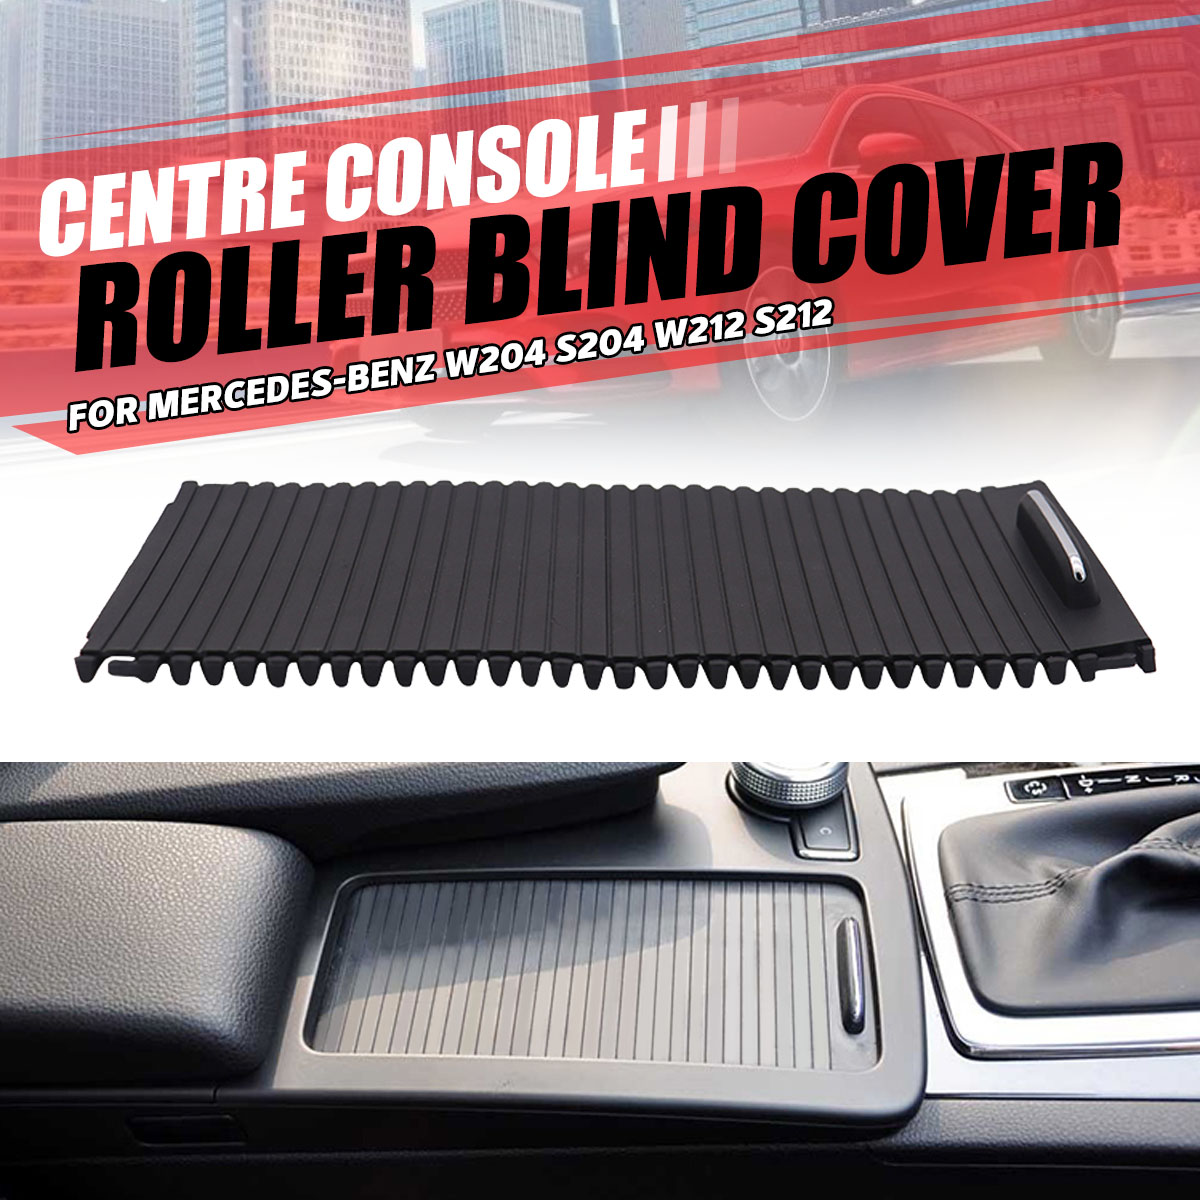 Car Inner Indoor Centre Console Roller Blind W204 Cover For Mercedes C/E-Class W204 S204 W212 S212 A20468076079051